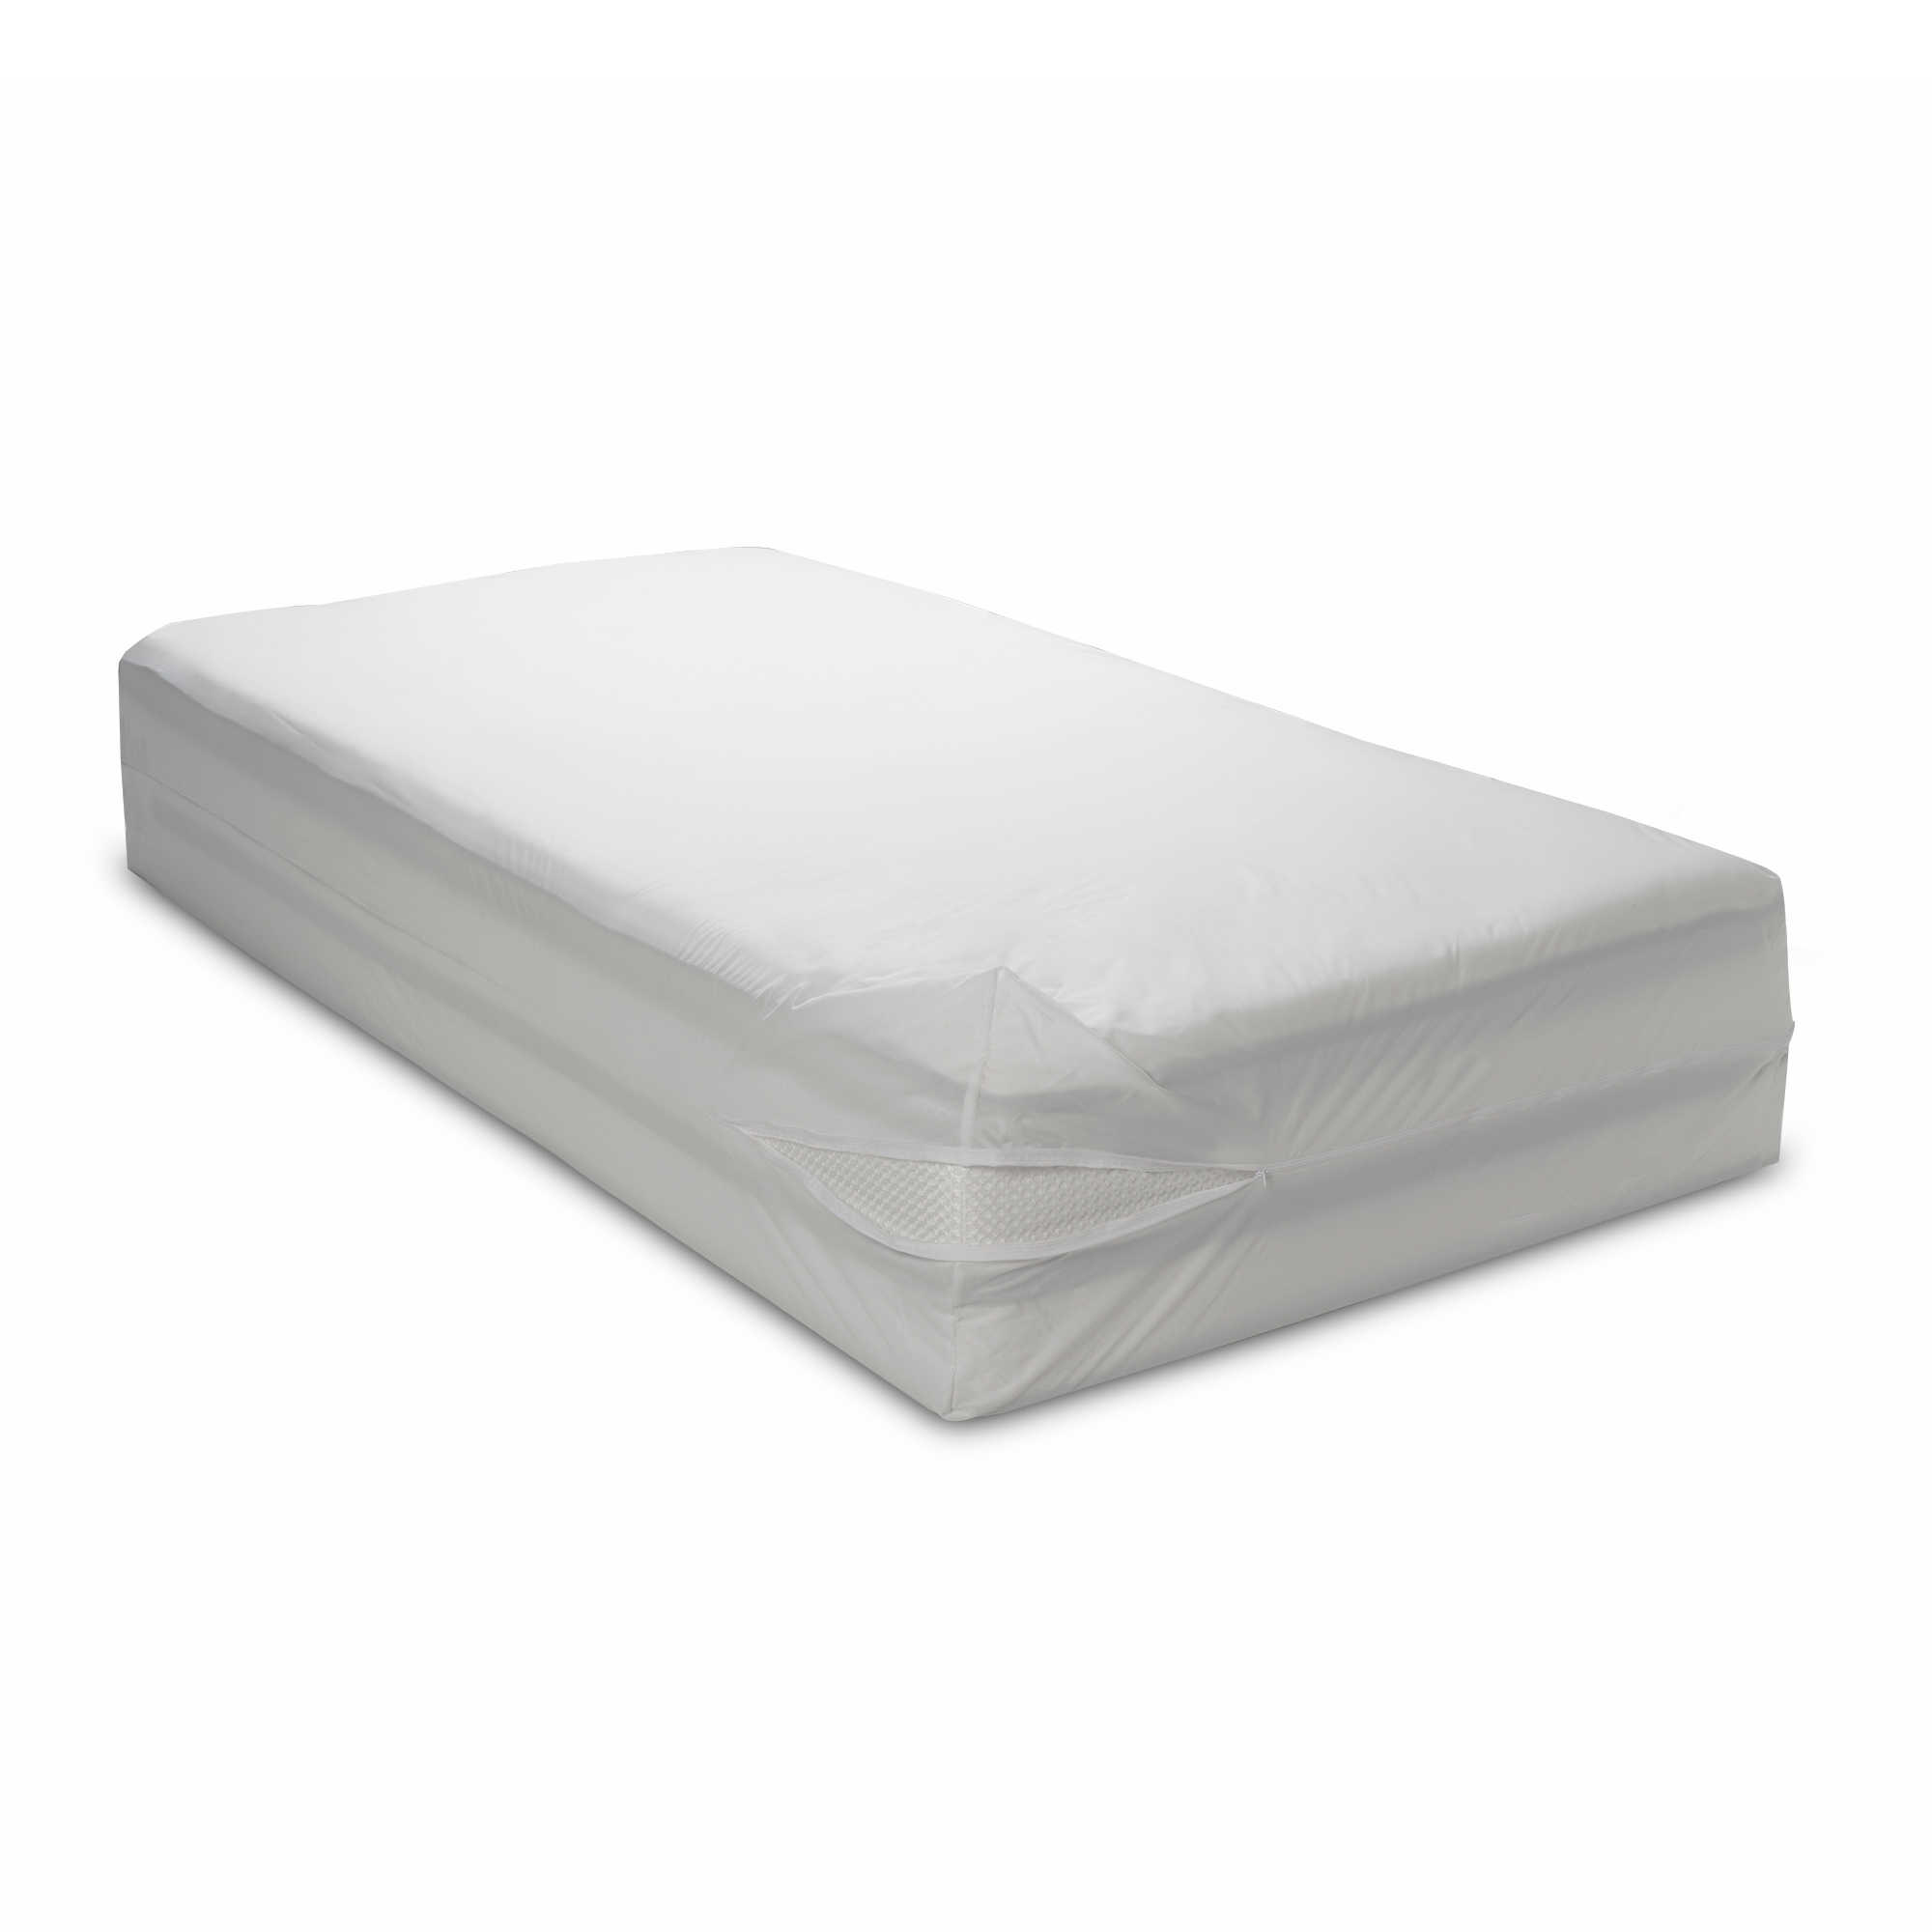 concept mattress size great pictures protector consumer bedgear ratings reports allerease full of mattressector reviews amazon